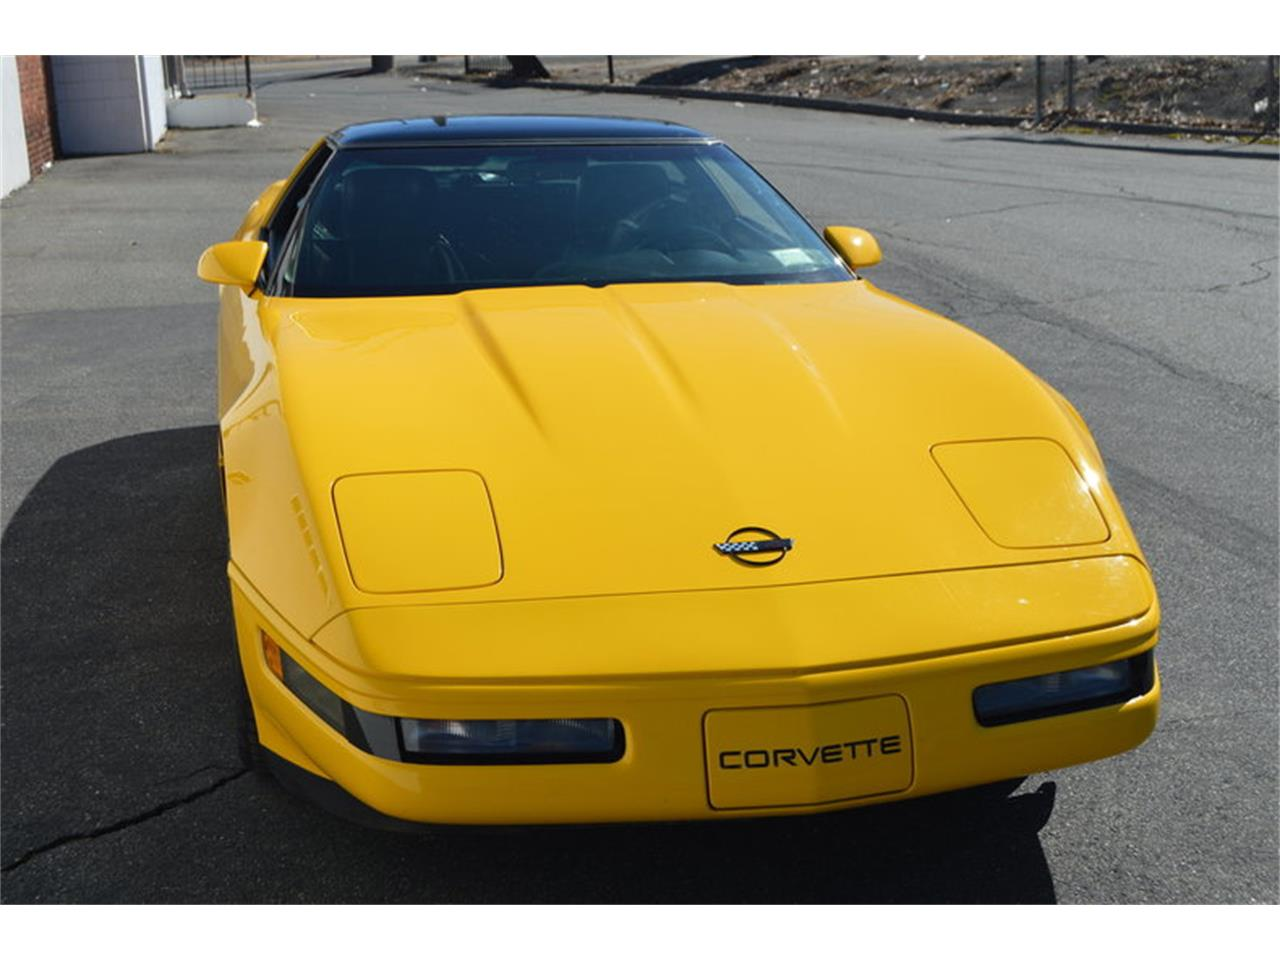 Large Picture of 1993 Corvette located in Massachusetts - $8,990.00 - MZK6